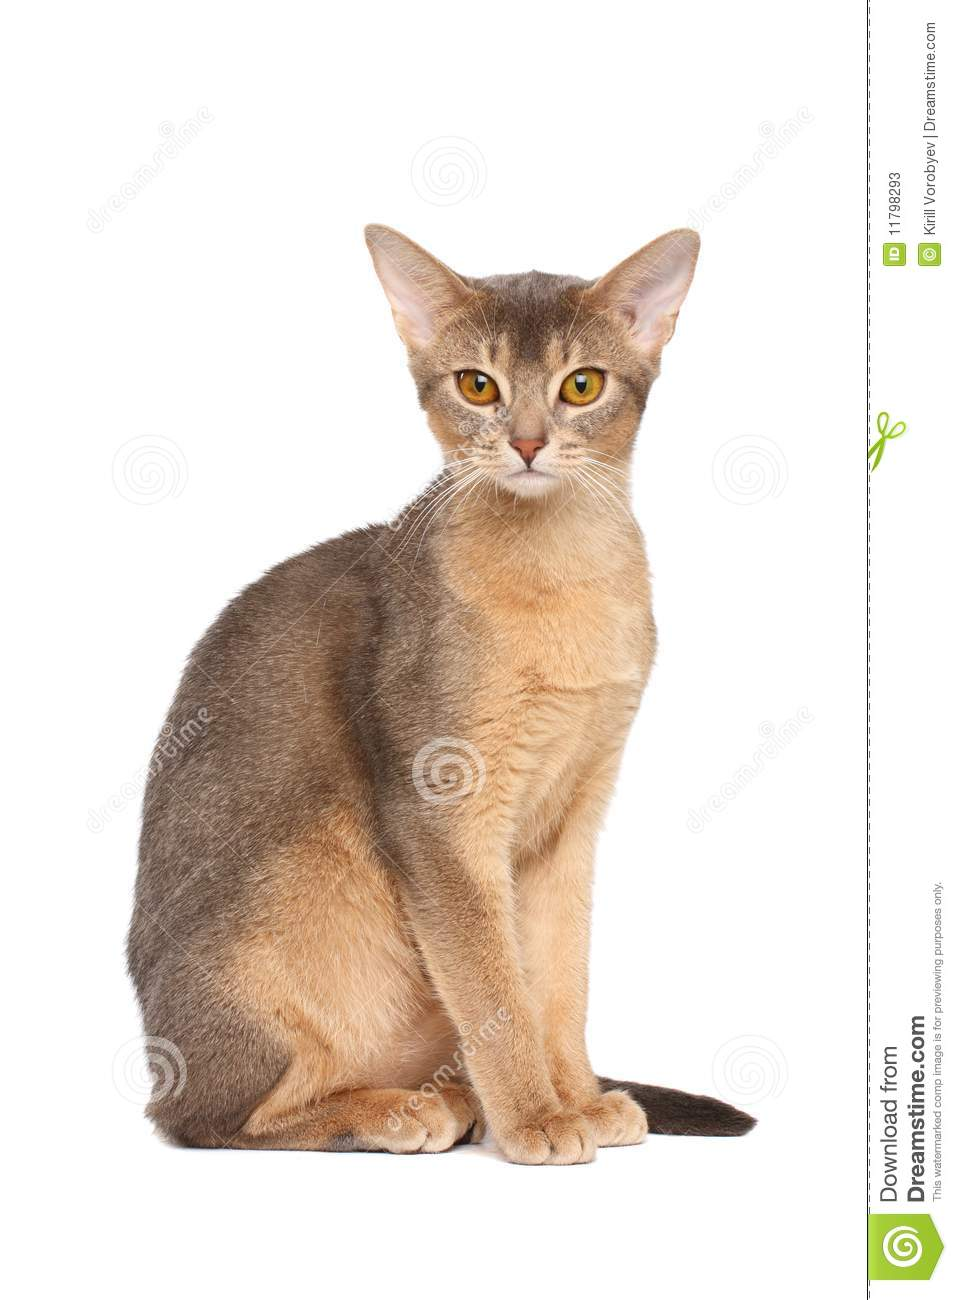 Abyssinian cat stock image. Image of background, kitten - 11798293